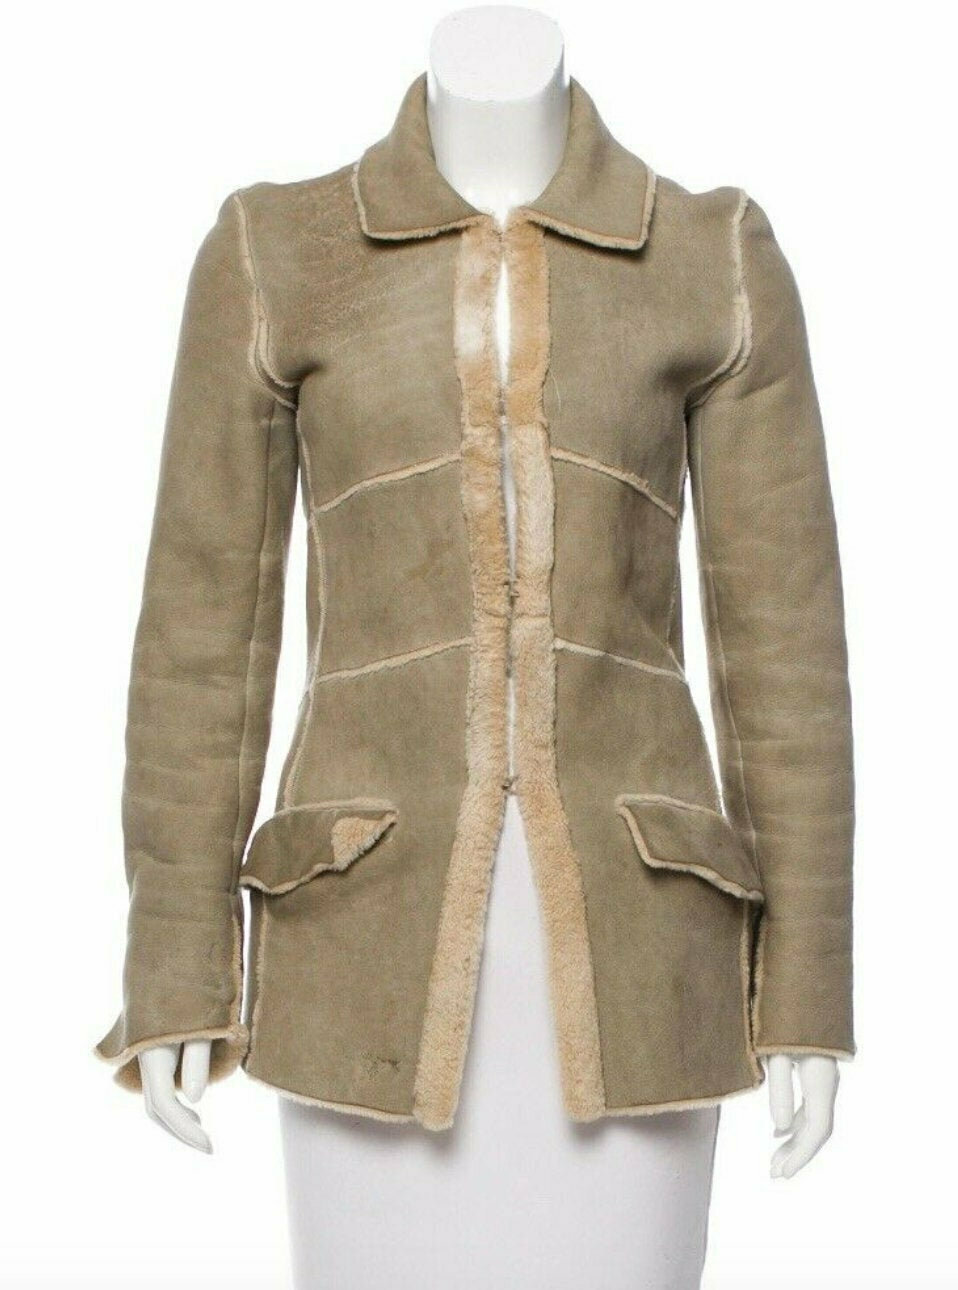 Vintage 90's CHANEL Leather Shearling Lambs Wool Beige Camel Bell Sleeves Coat Trench Jacket